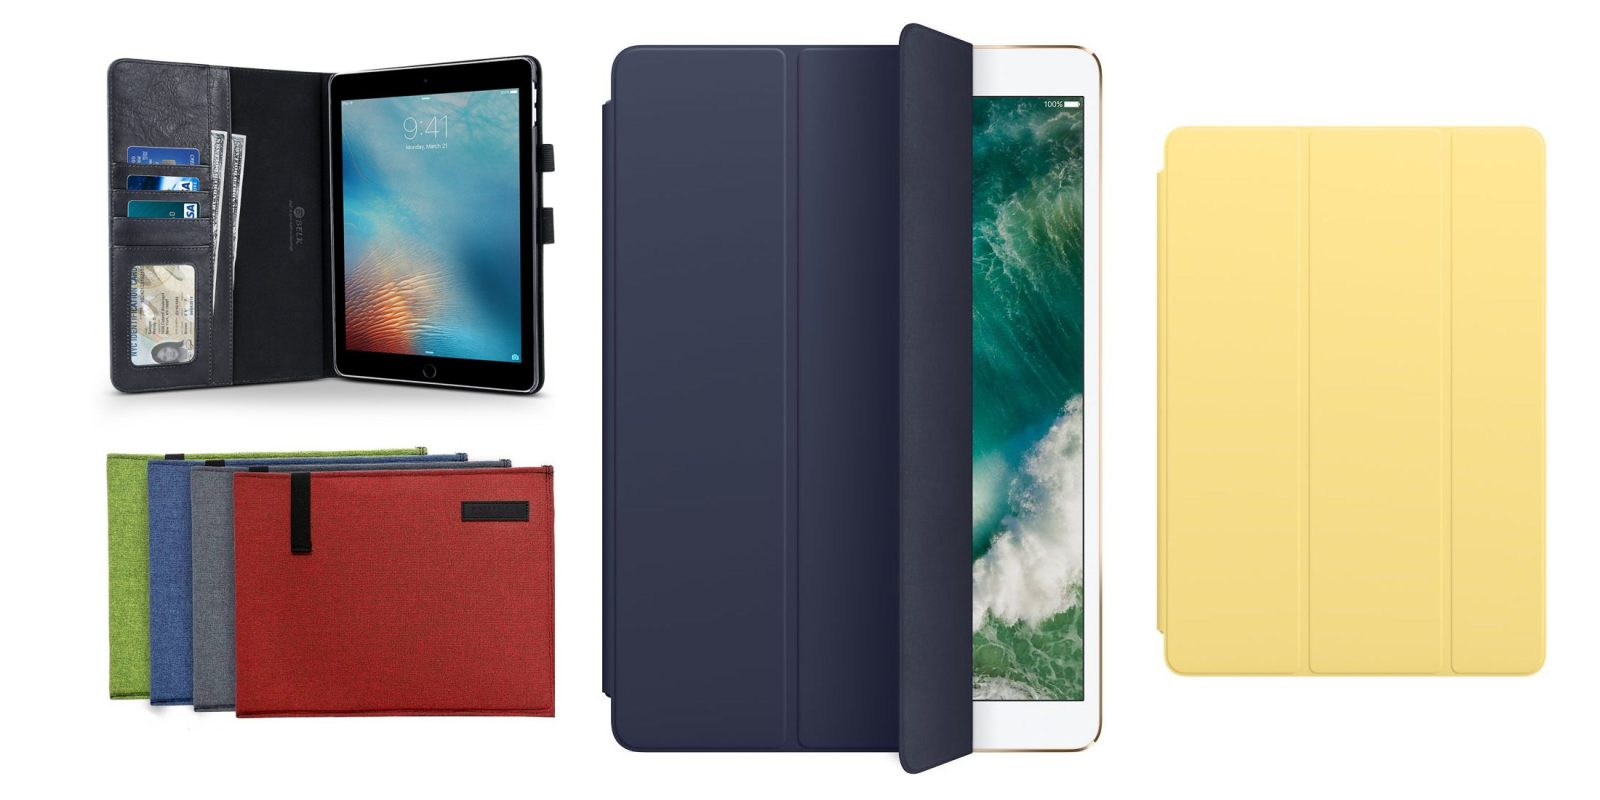 Best iPad Pro 10.5-inch Leather Cases in 2019 - iGeeksBlog